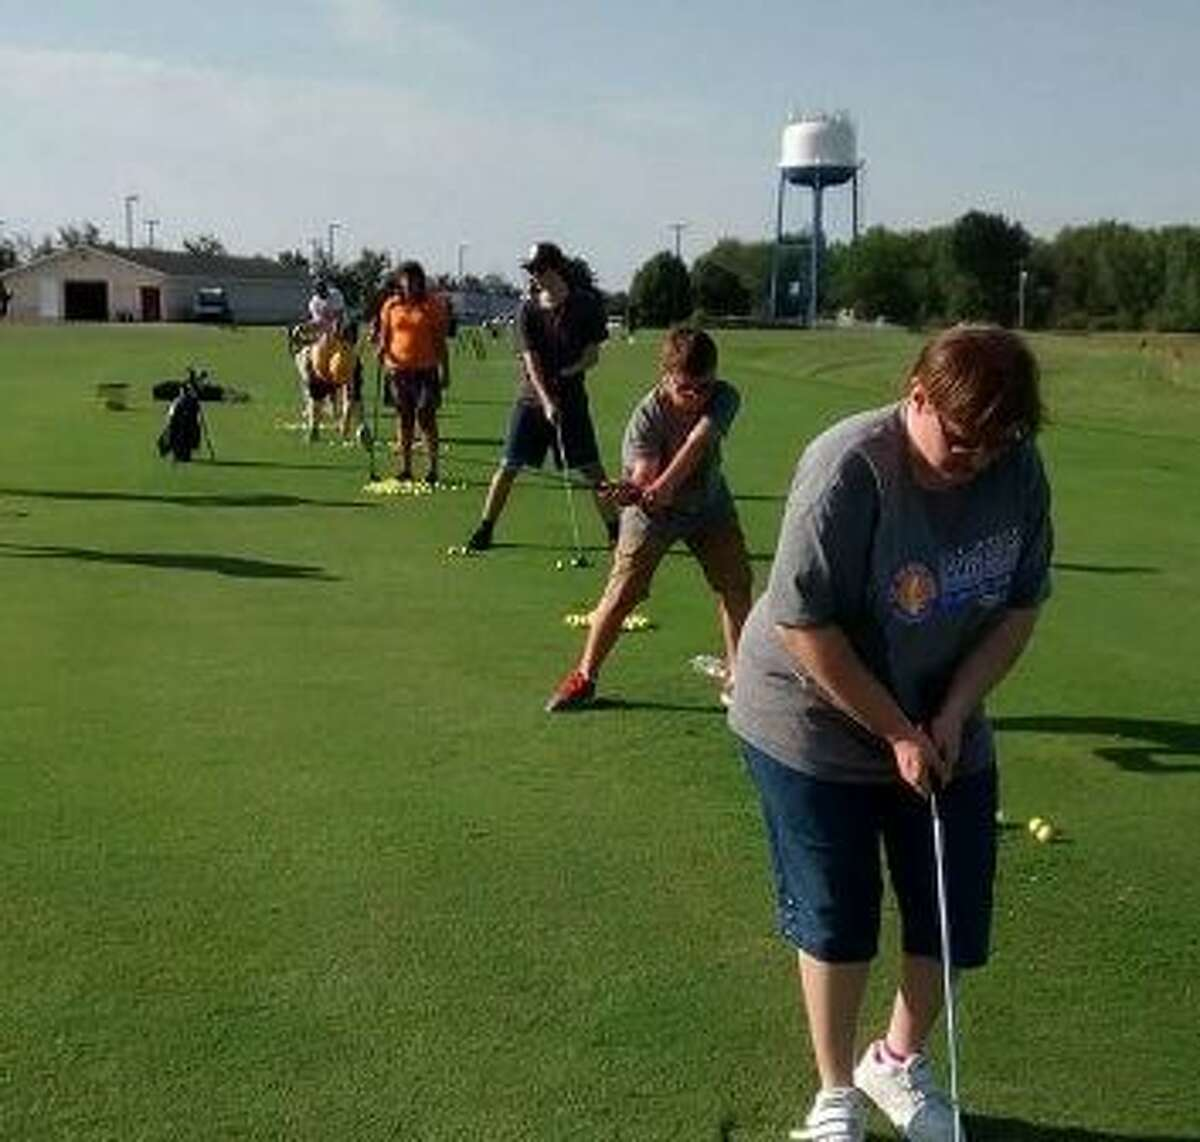 Athletes from Area 5 Special Olympics Michigan practice golfing at Katke Golf Course in Big Rapids. The athletes will be competing Sept. 29 to Oct. 1 in the Special Olympics Michigan State Fall games. (Courtesy photo)